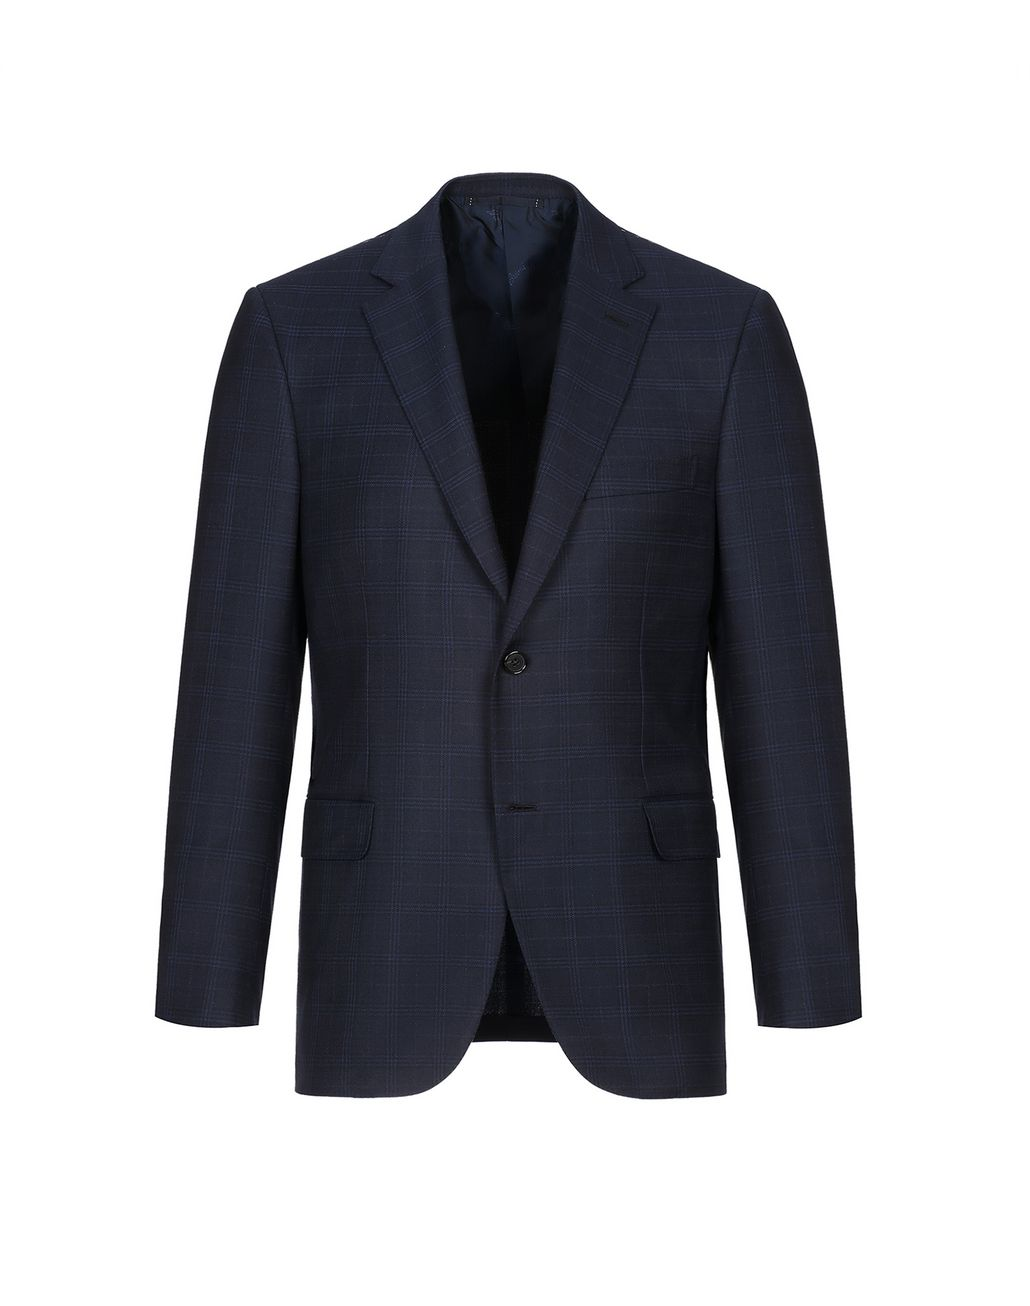 BRIONI Navy Blue Ravello Jacket Jackets Man f